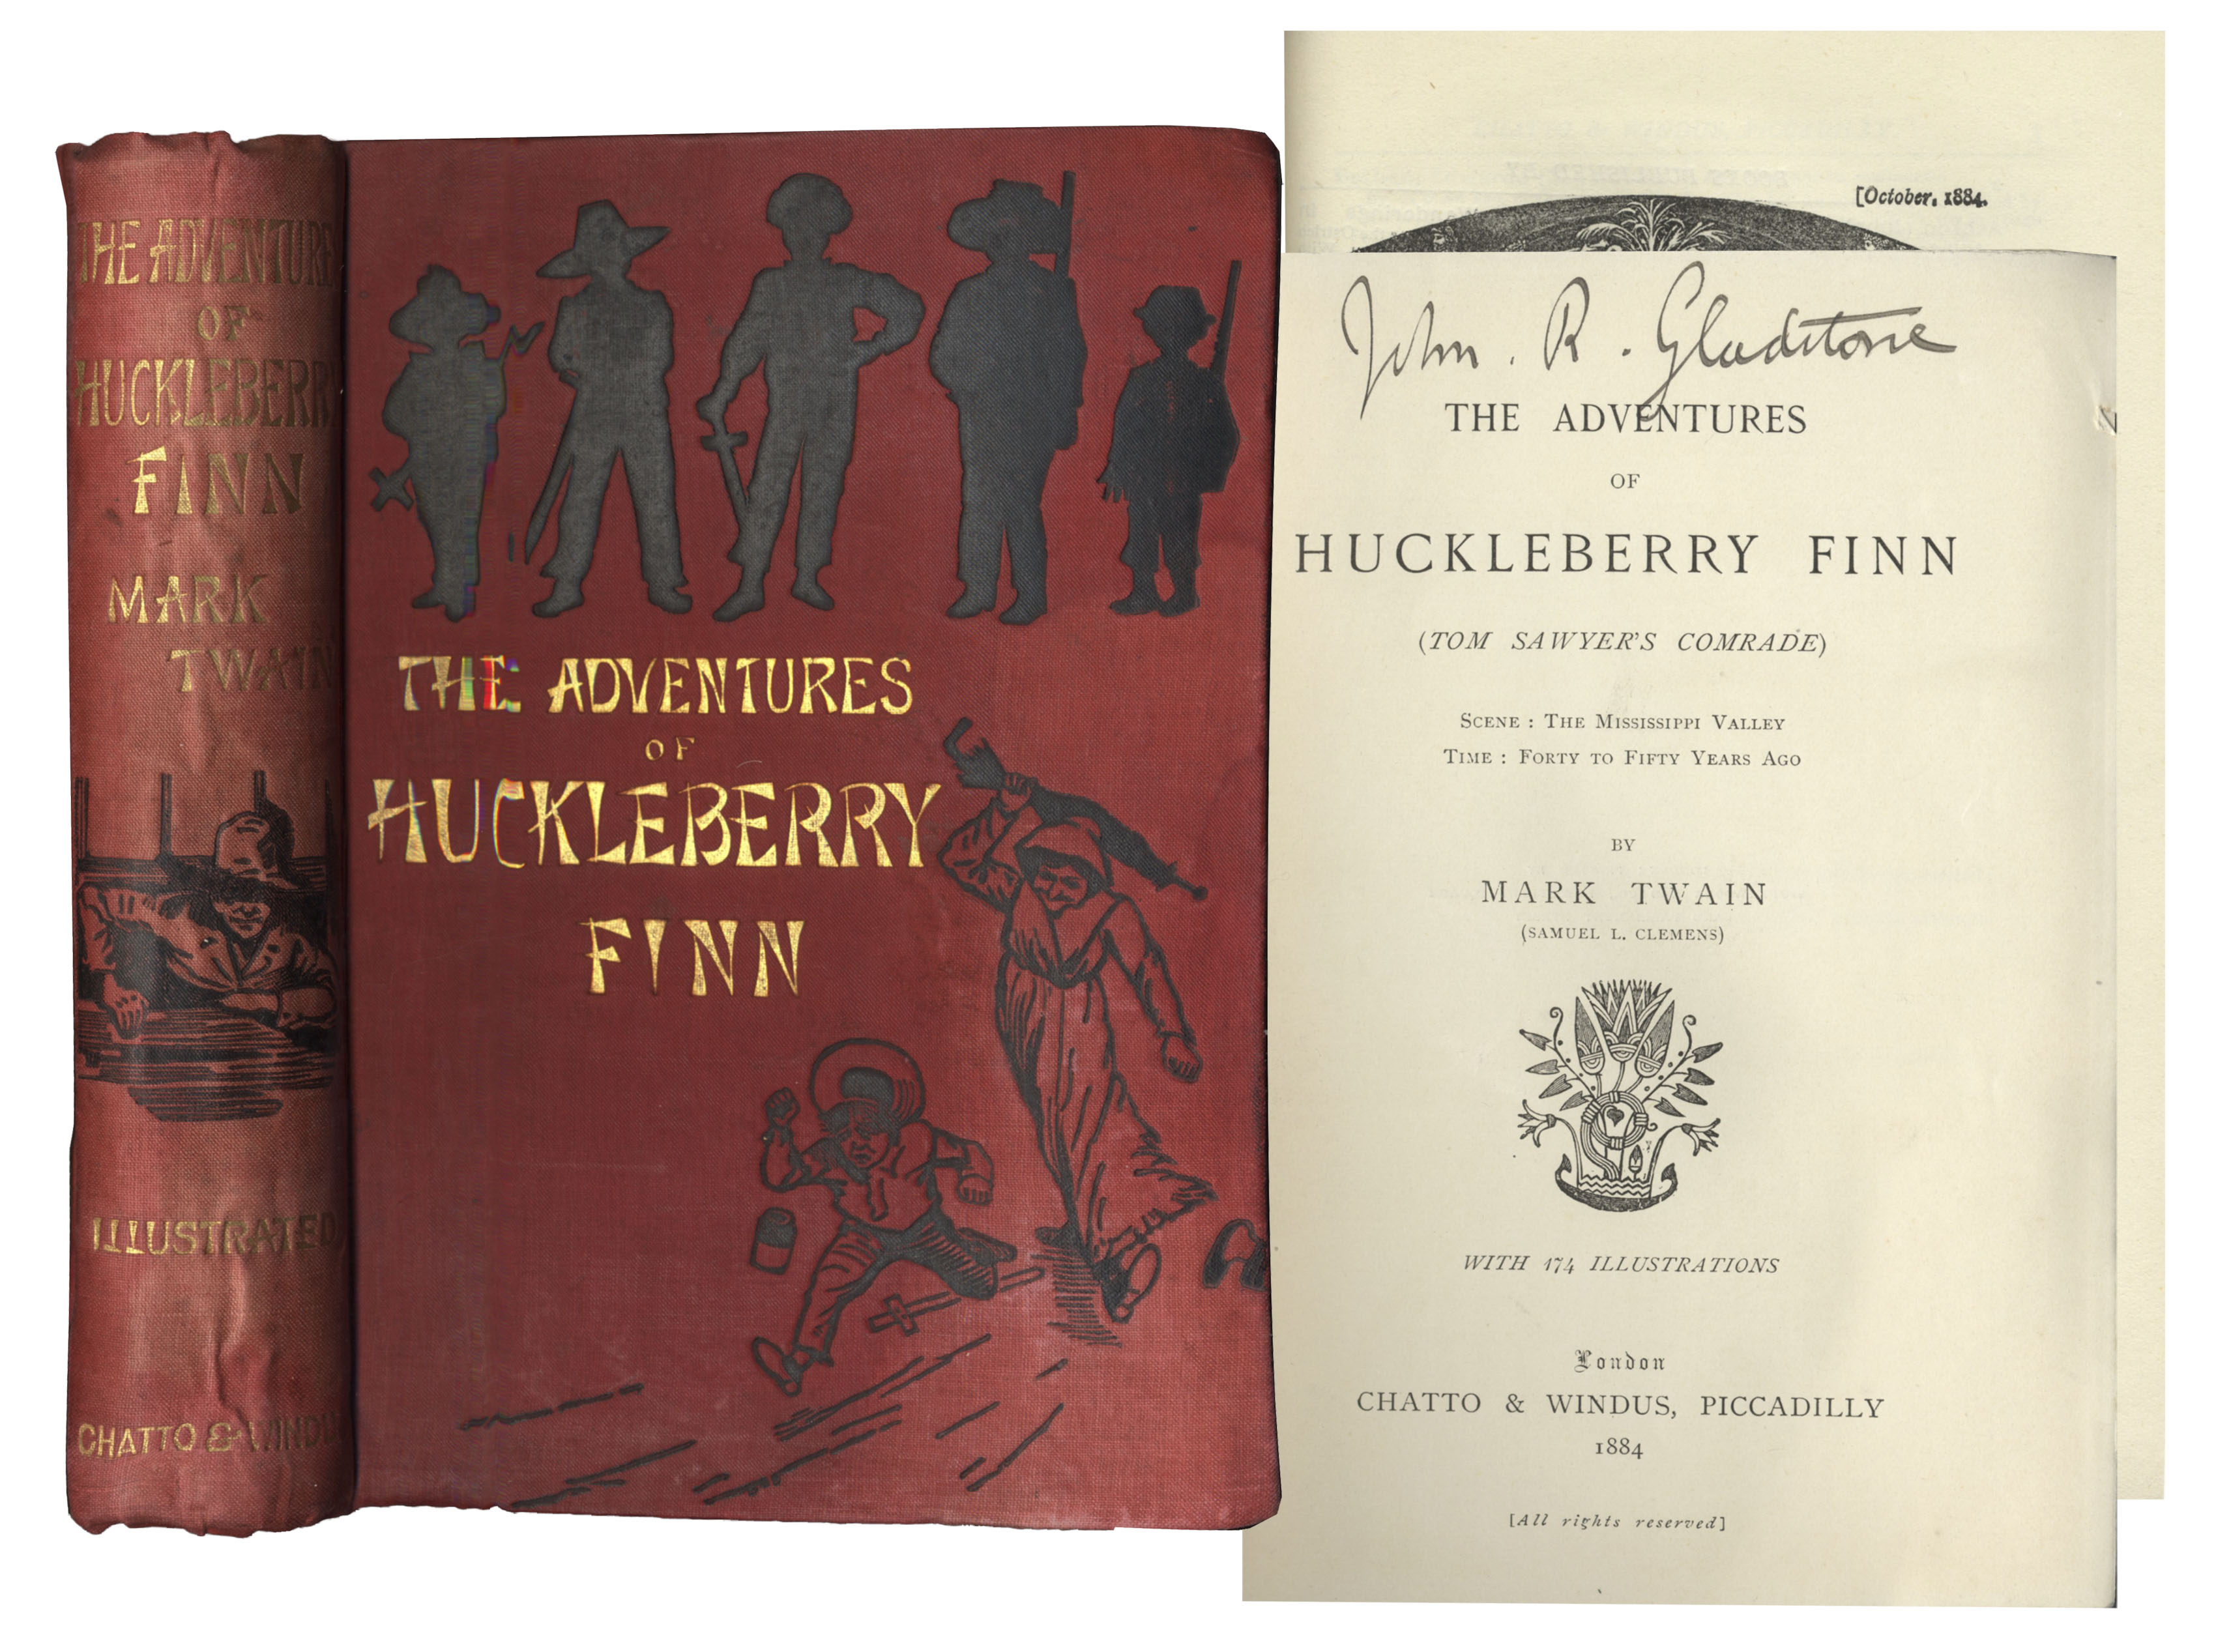 an examination of the adventures of huckleberry finn by mark twain The adventures of huckleberry finn has 1,038,235 ratings and 13,156 reviews david said: after reading adventures of huckleberry finn, i realized that i.